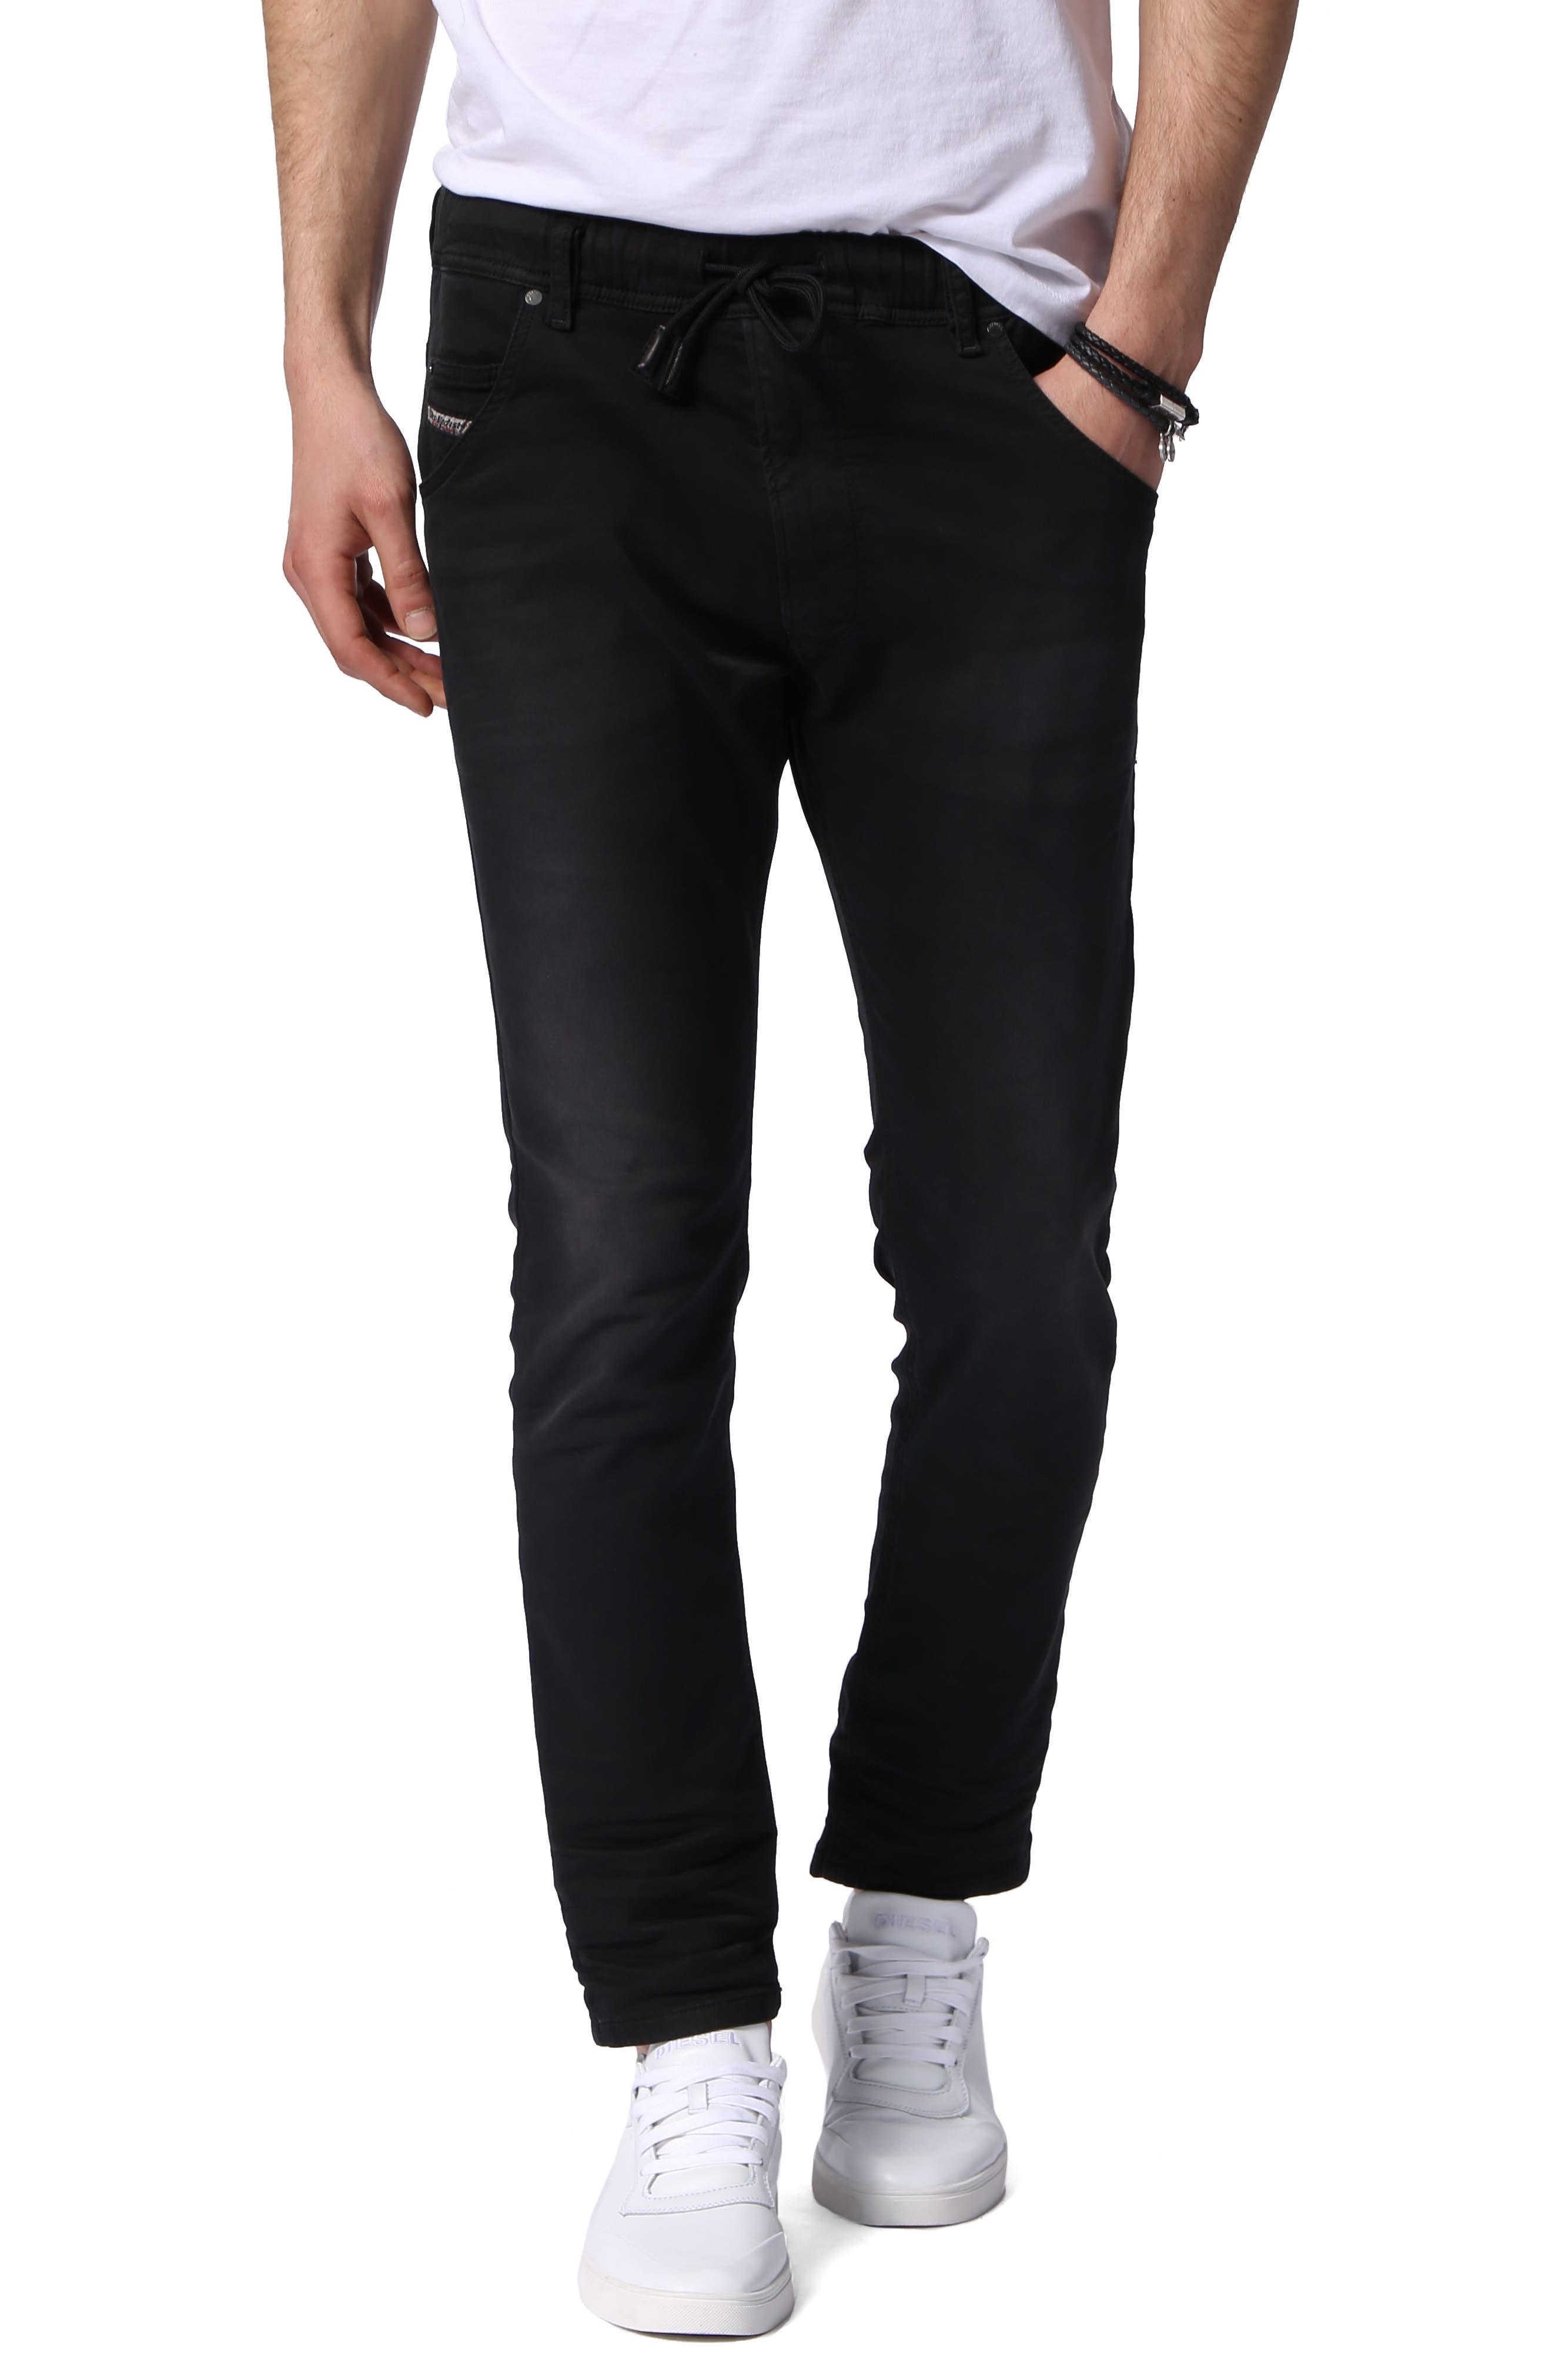 Krooley Skinny Slouchy Jogger Jeans,                             Main thumbnail 1, color,                             0670M